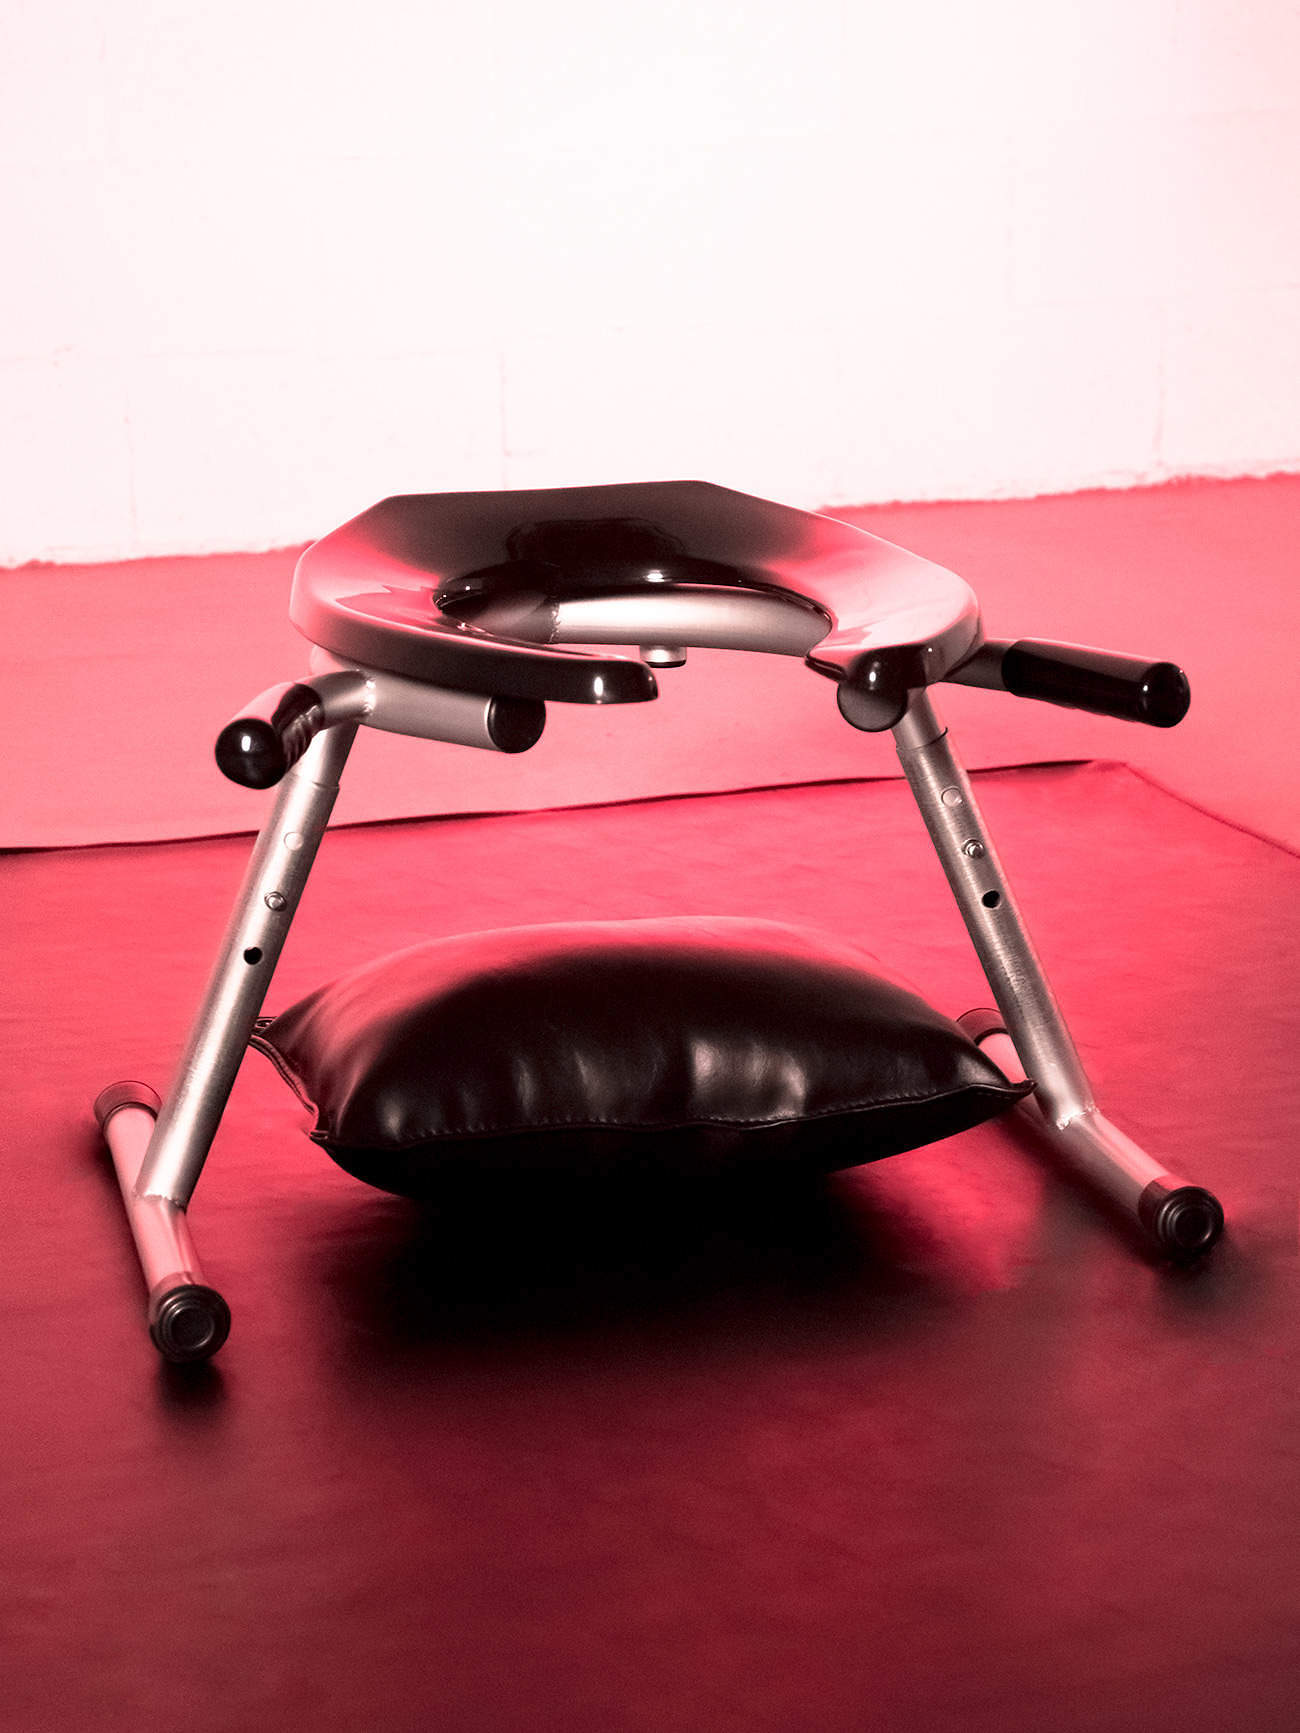 JimSupport Handled T-Leg Rim Seat with Pillow